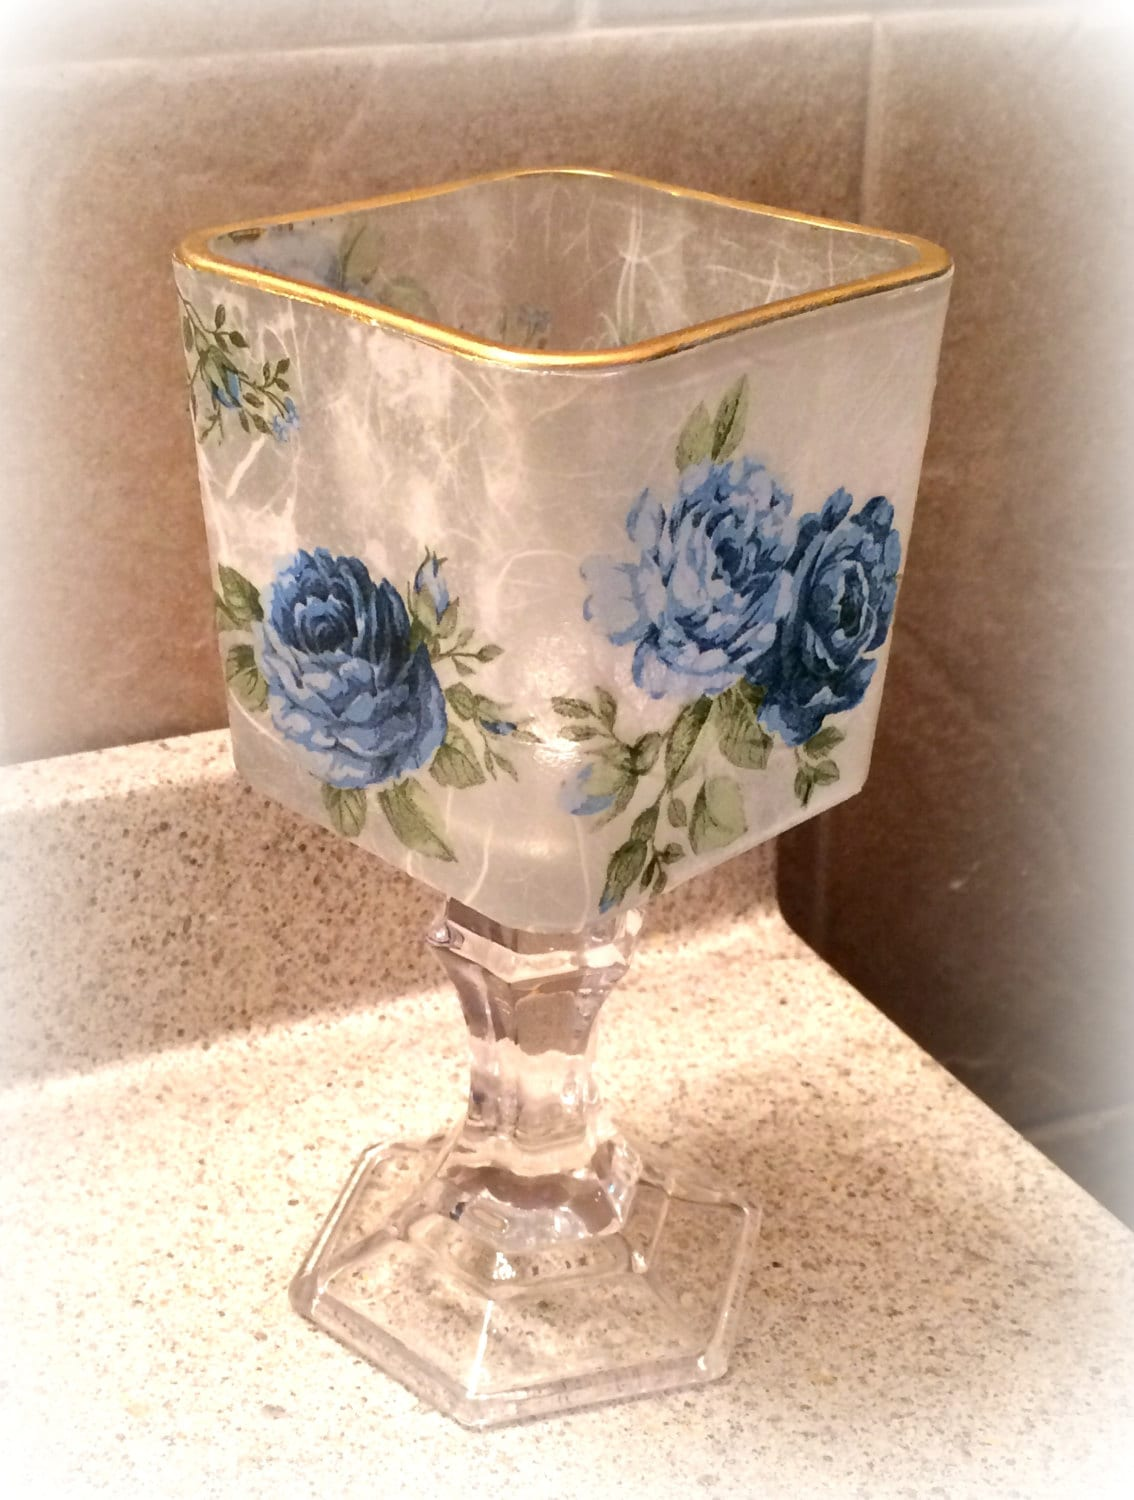 Shabby chic candle holder blue roses on glass decoupage